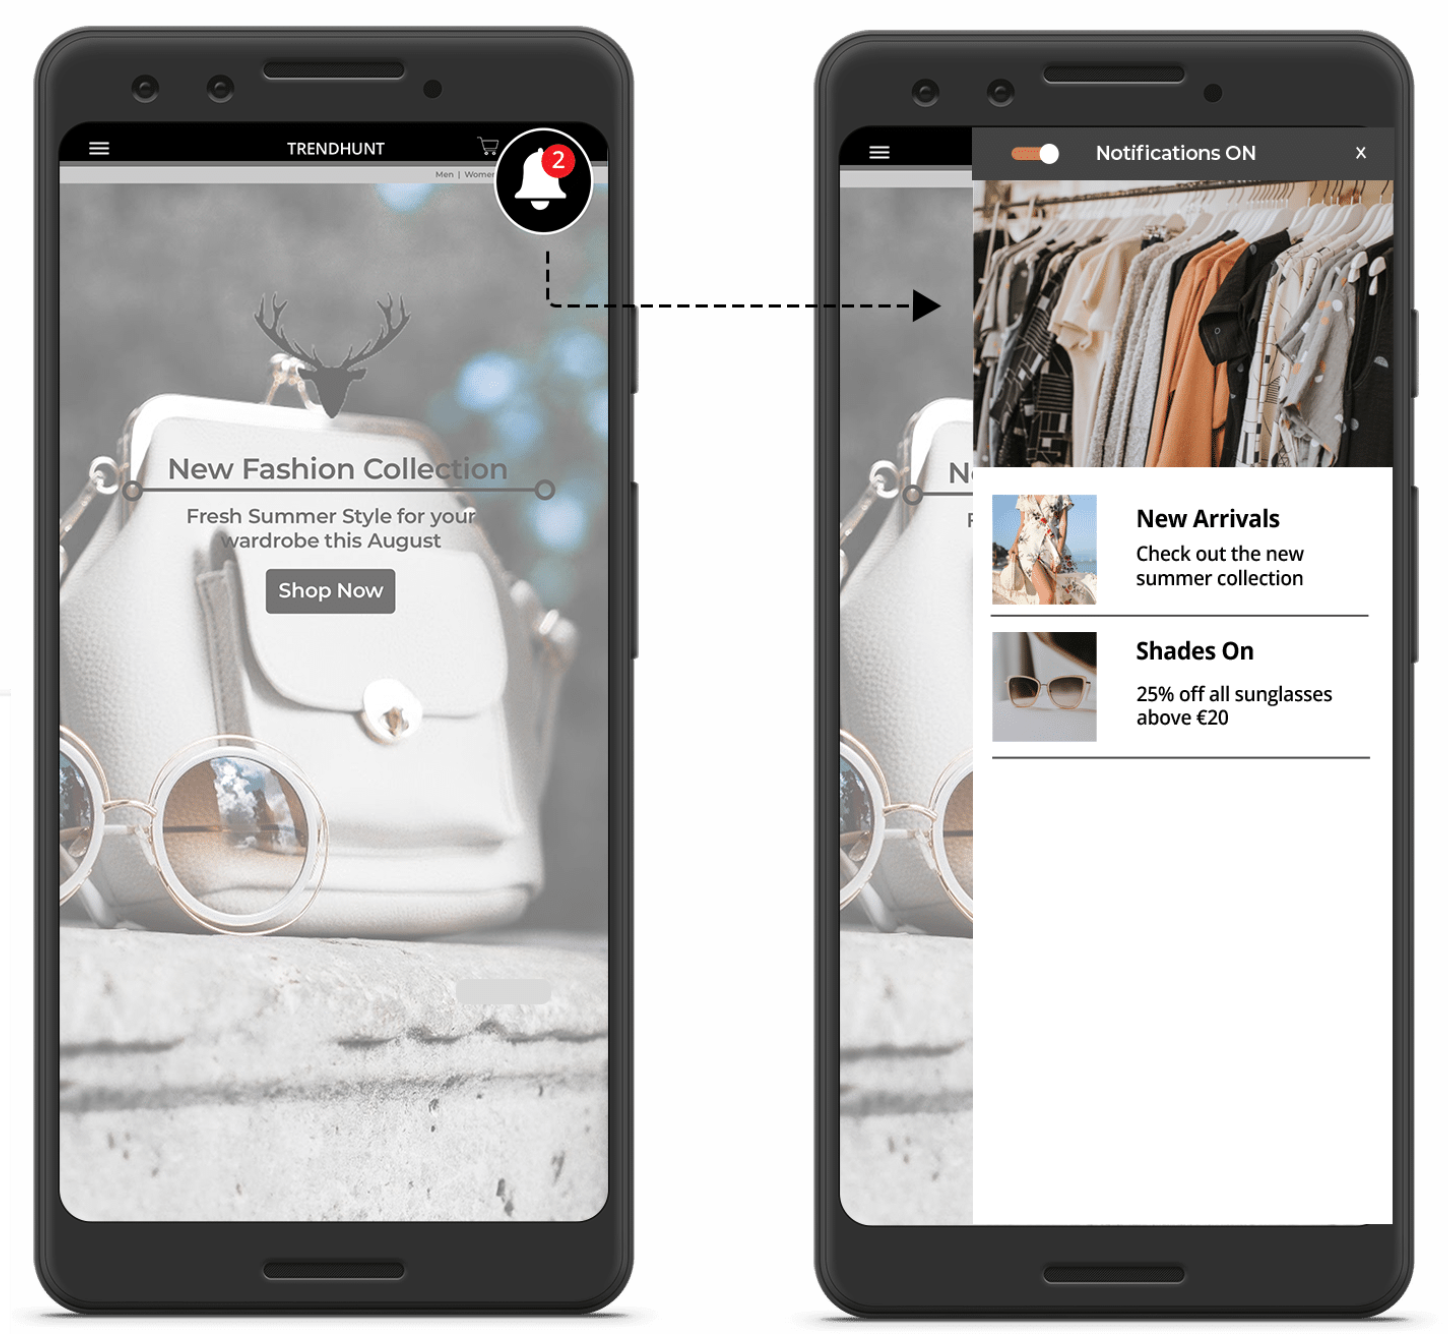 Example of the inbox integrated in an Android app.